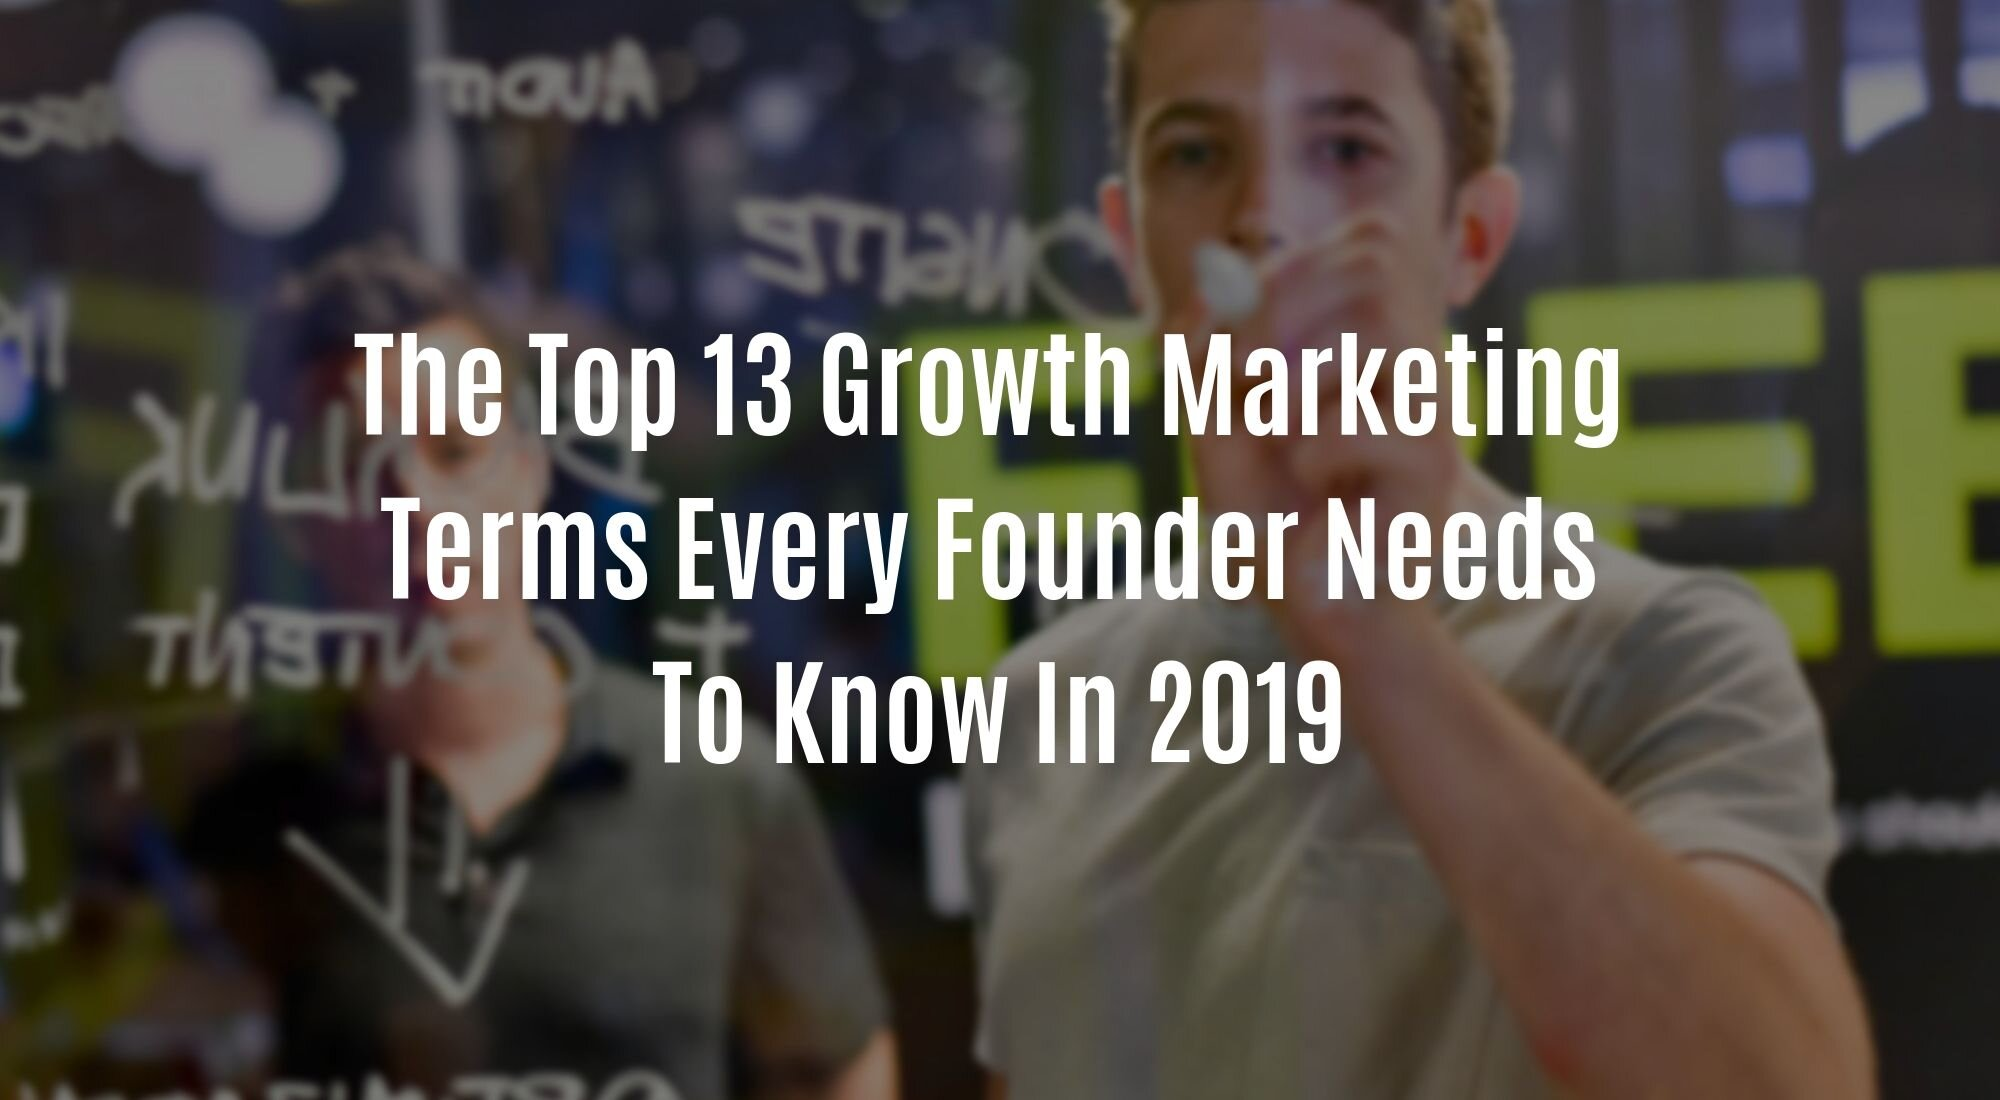 The Top 13 Growth Marketing Terms Every Founder Needs To Know In 2019.jpg